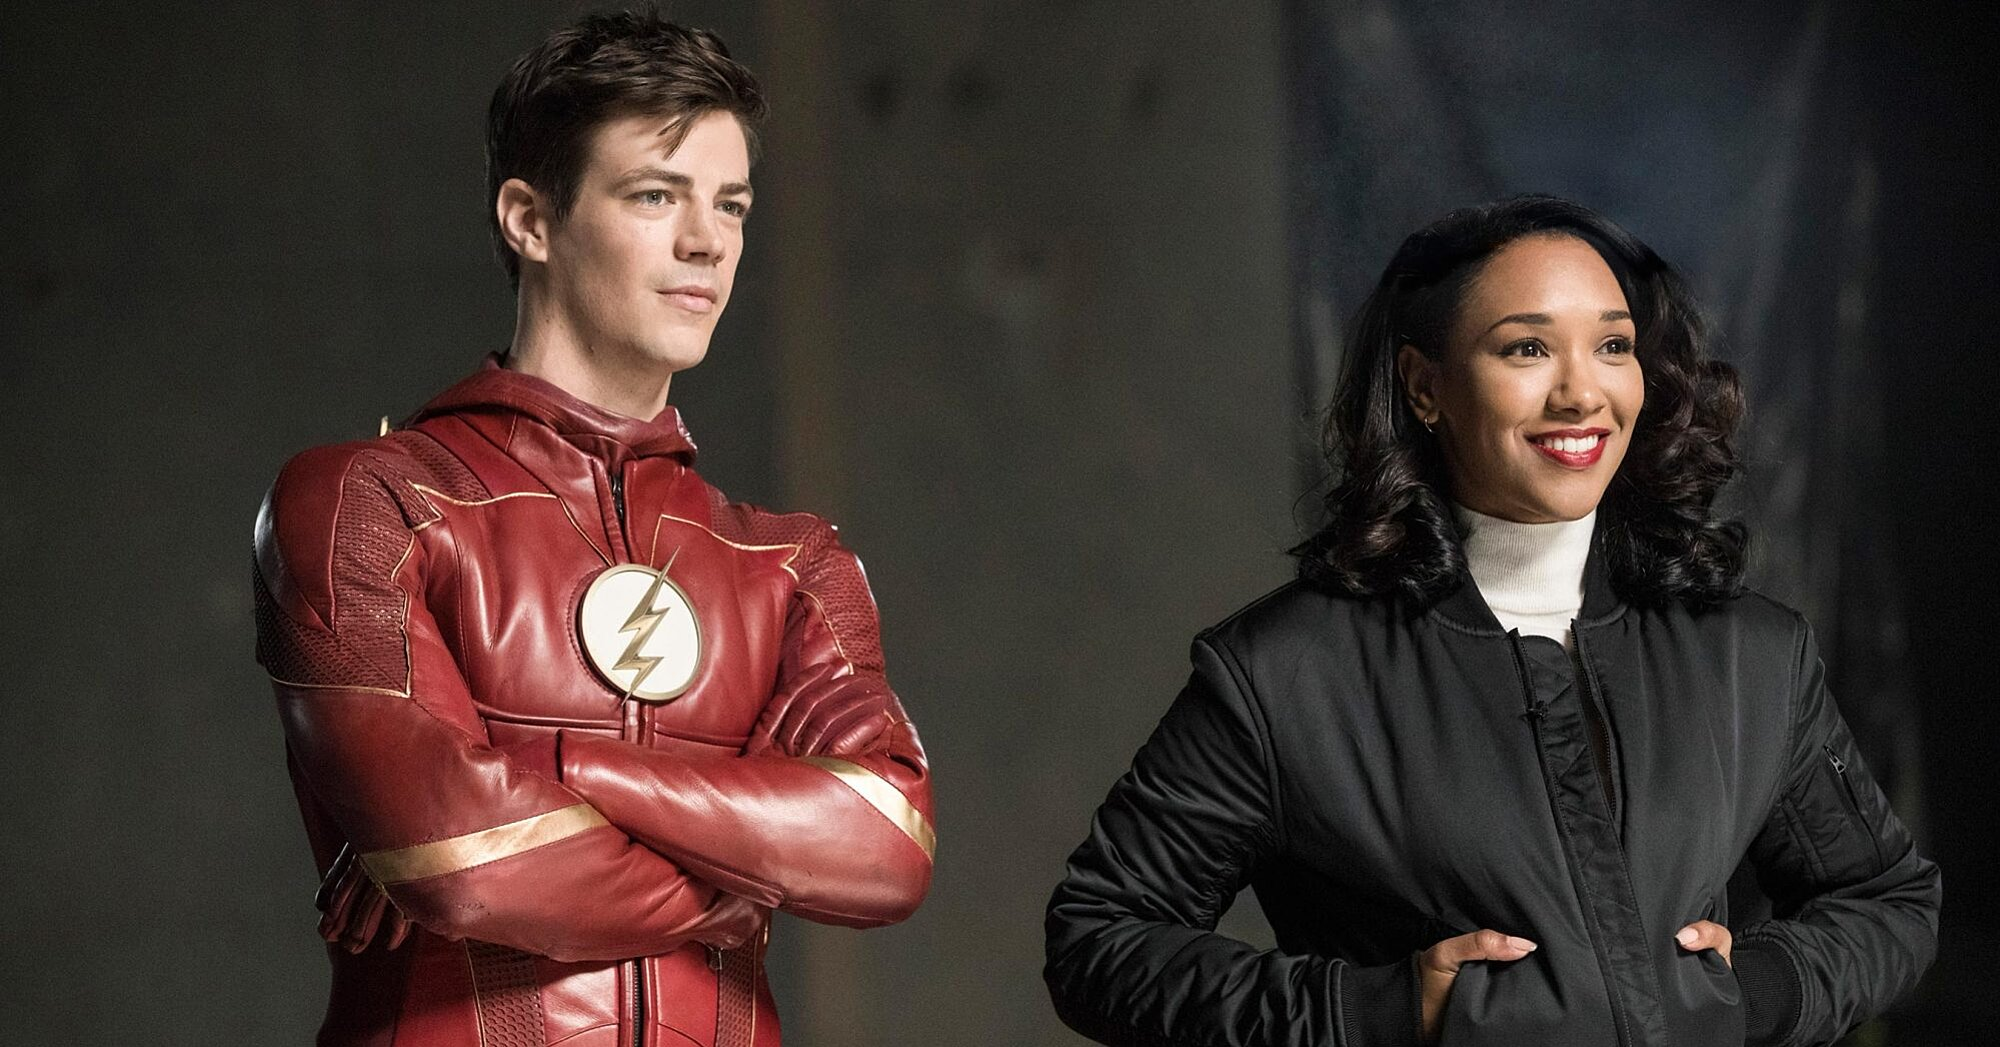 'The Flash' first look: Find out how Iris gets her powers